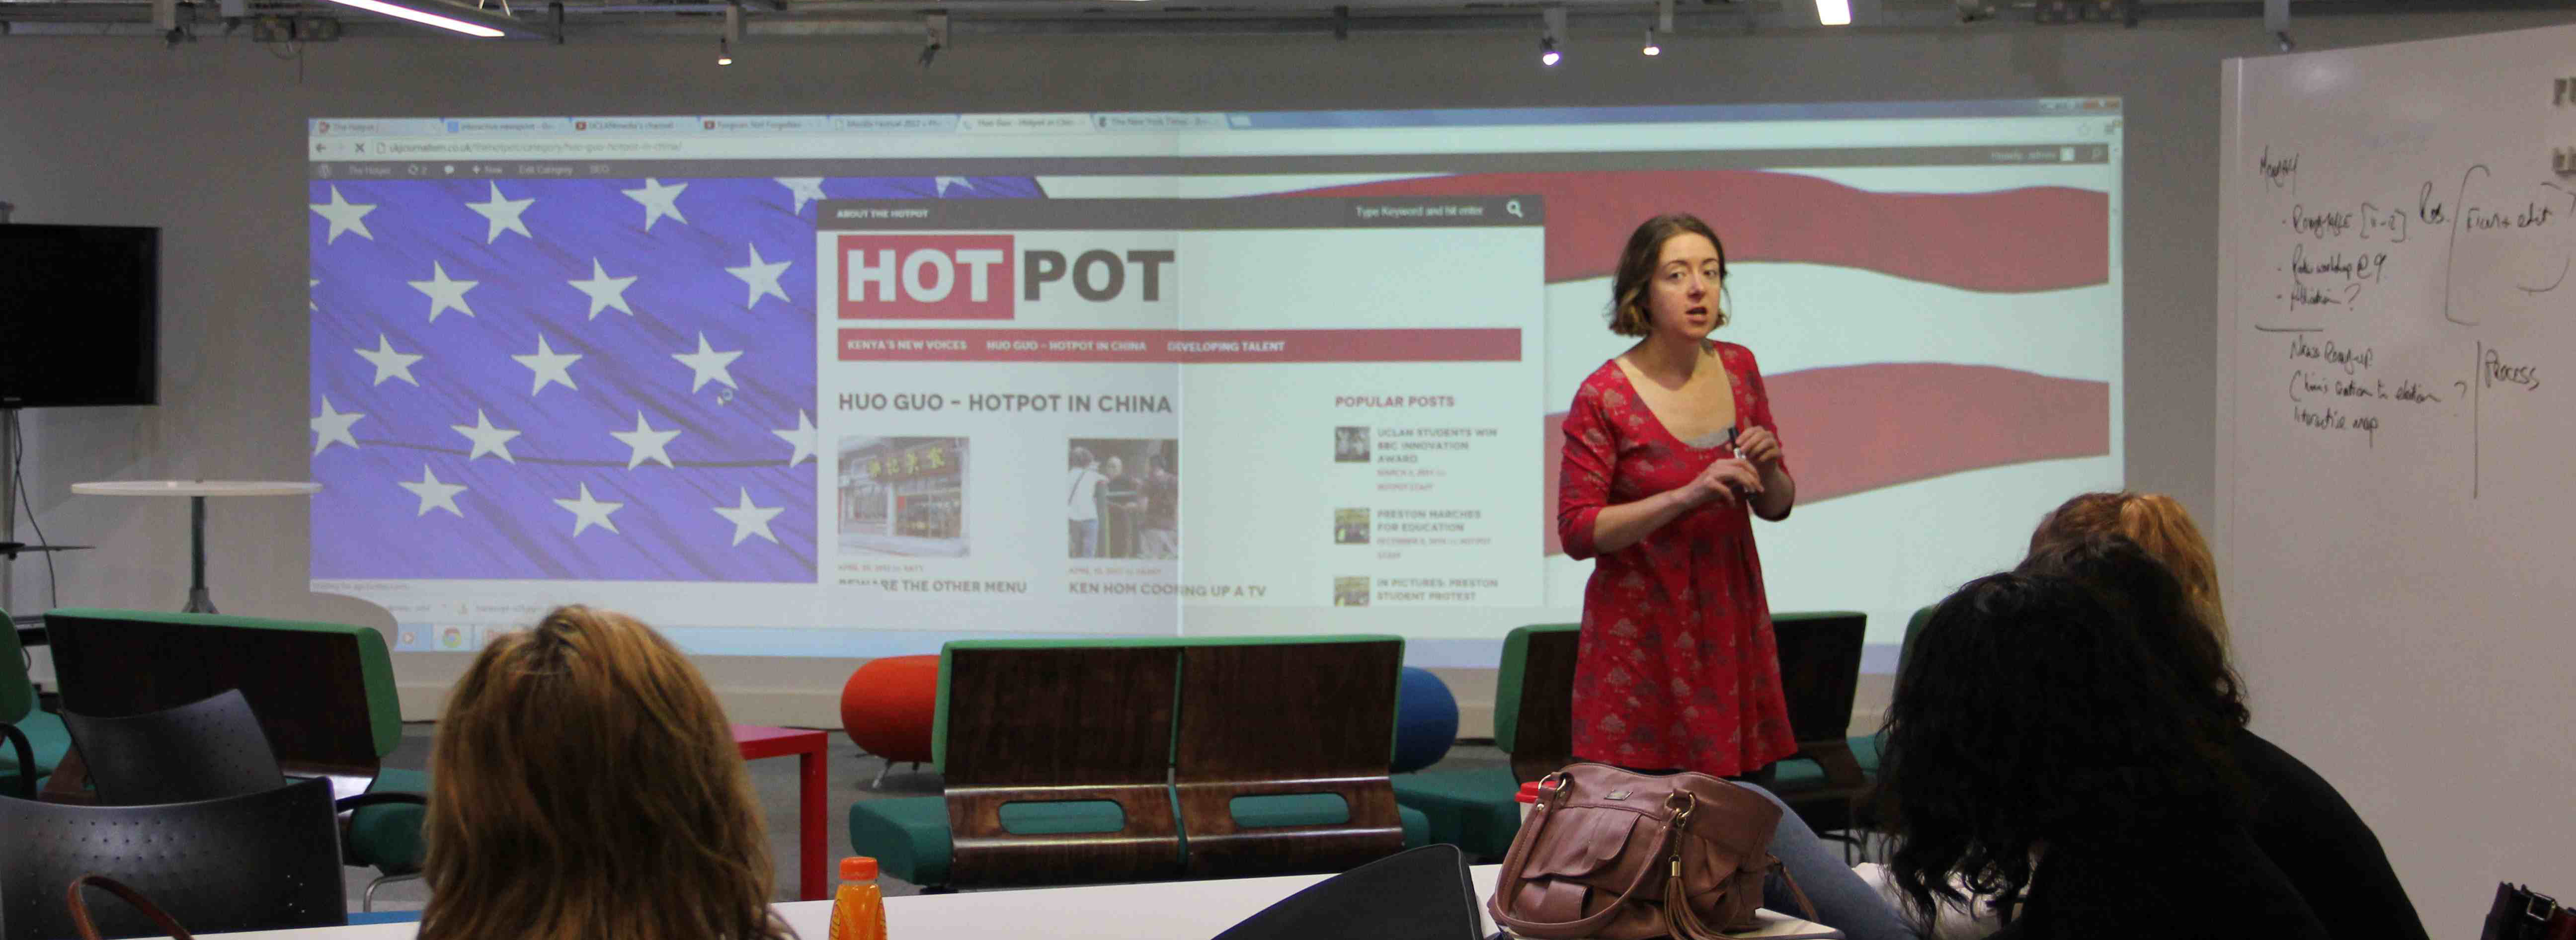 Media Innovation Studio serves up HotPot